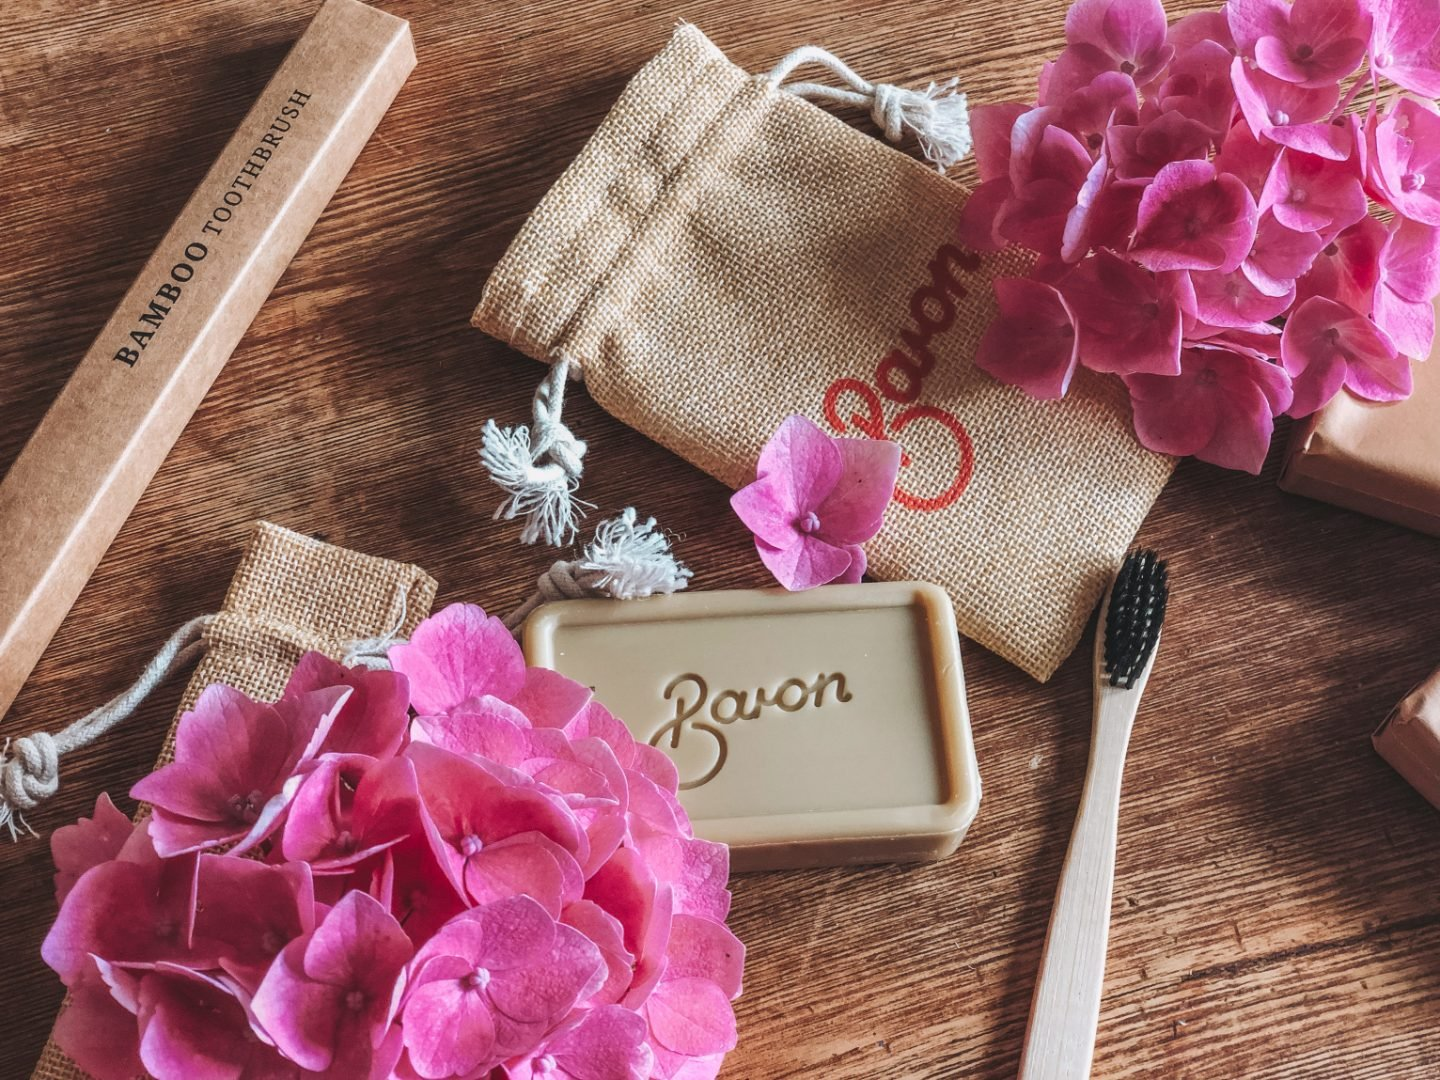 Baron Soap Bars for plastic free toiletries Travel Essential Tips for reducing plastic